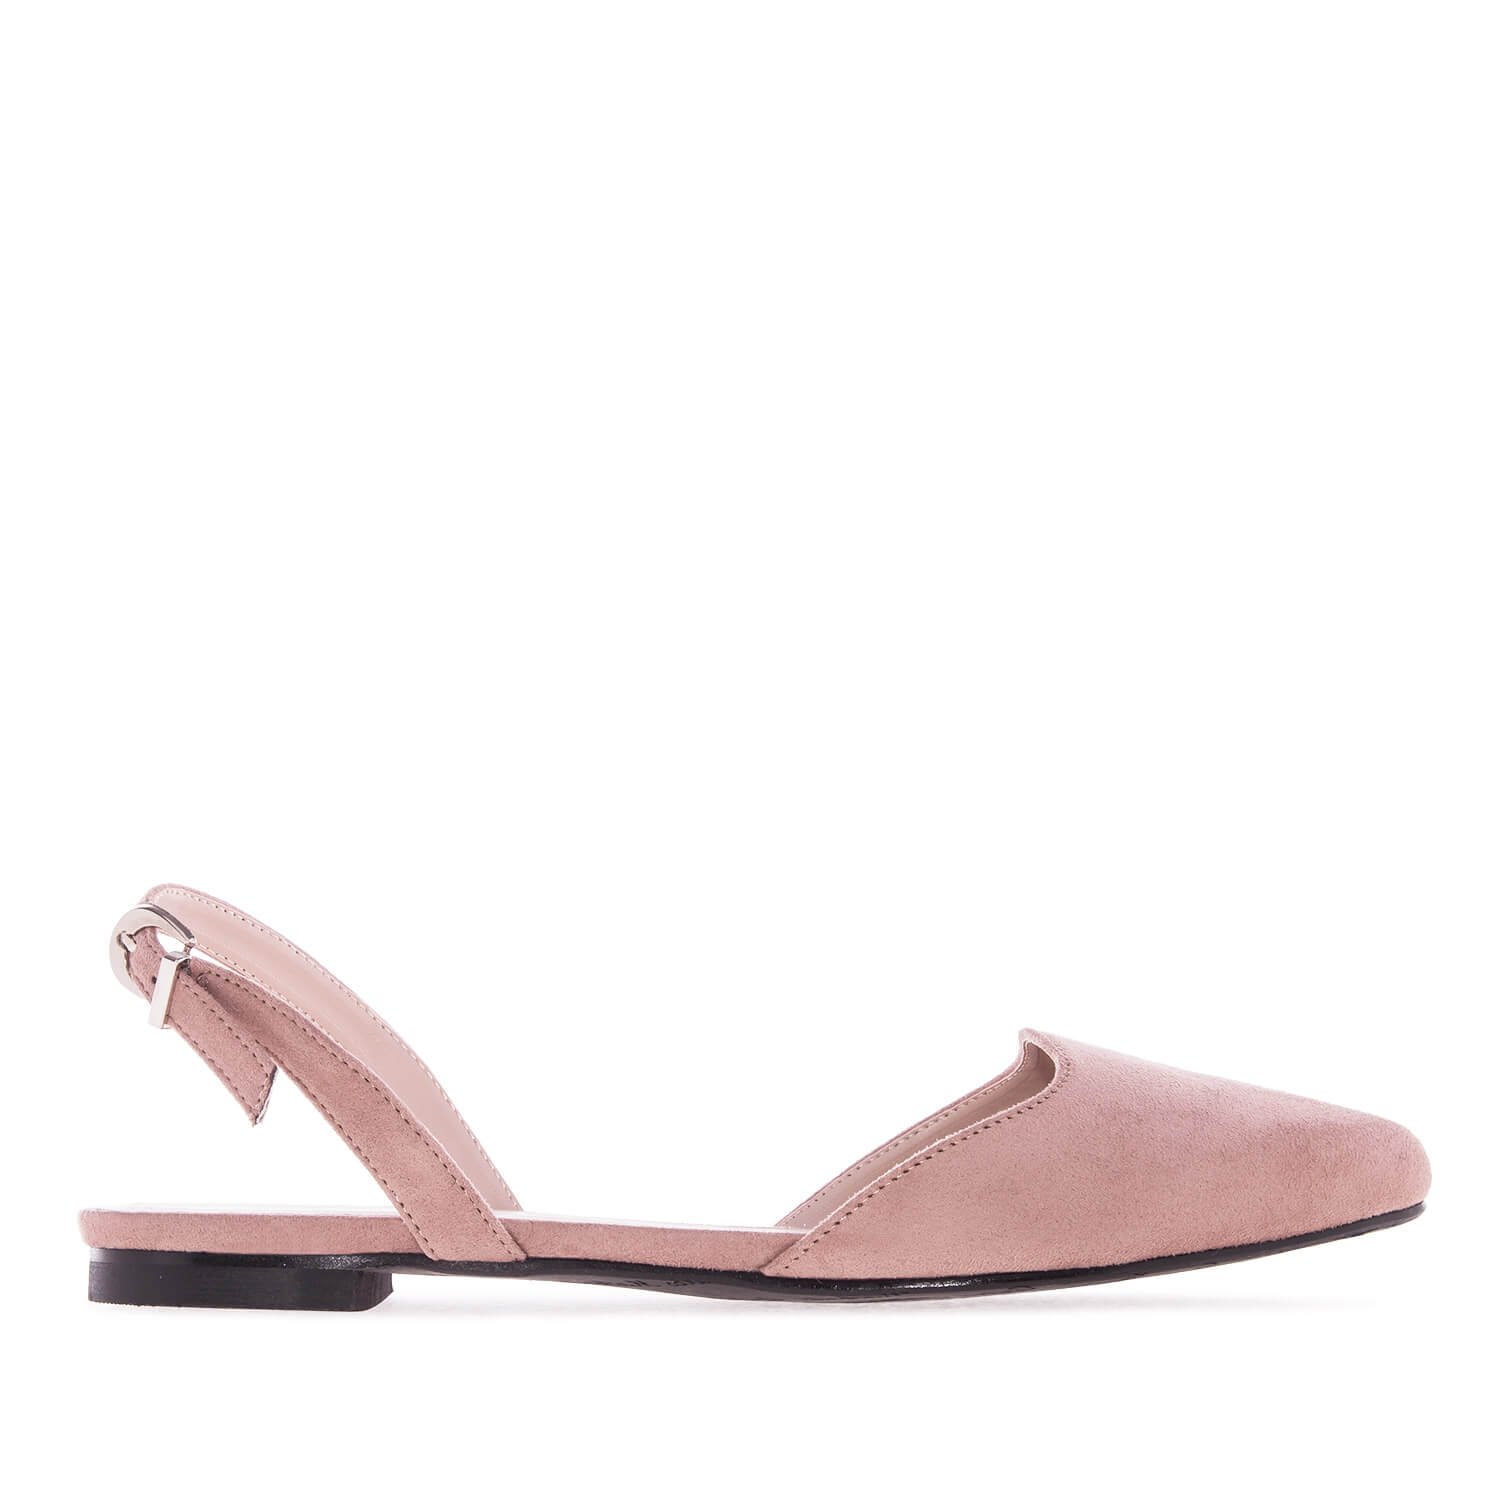 Slingback Ballet Flats in Nude Suede